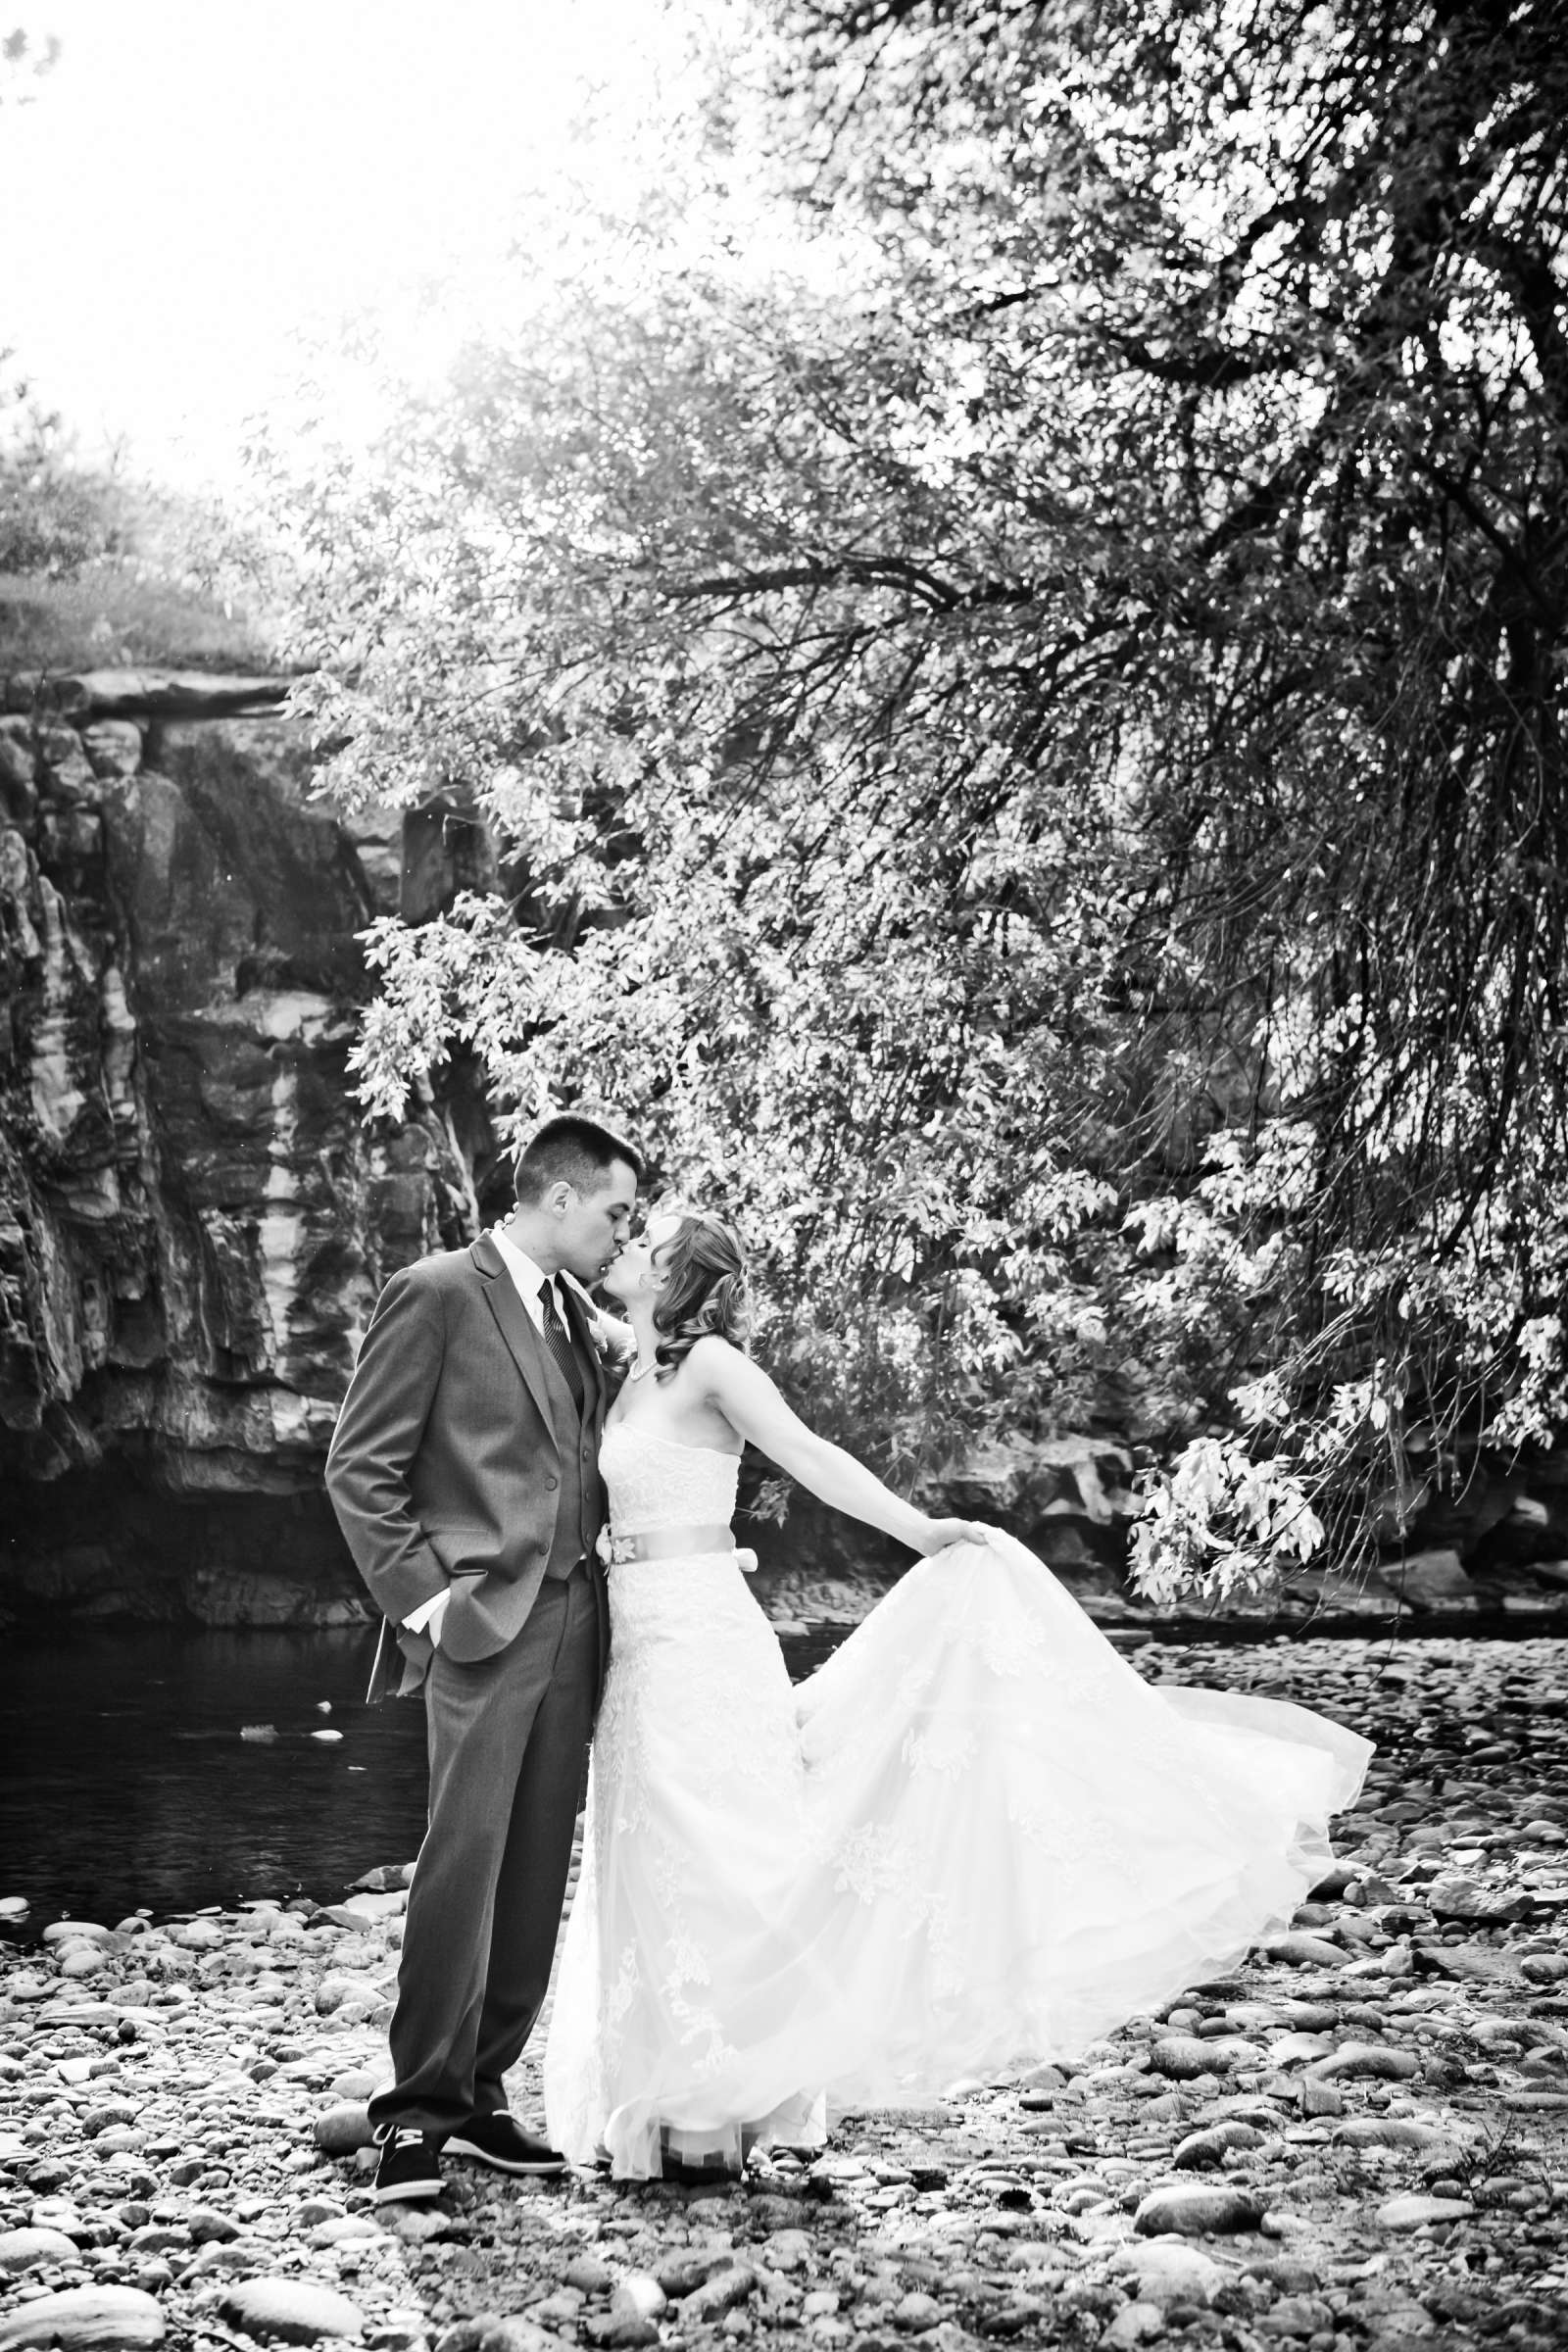 The Lyons Farmette Wedding, Tiffany and J. Travis Wedding Photo #16 by True Photography